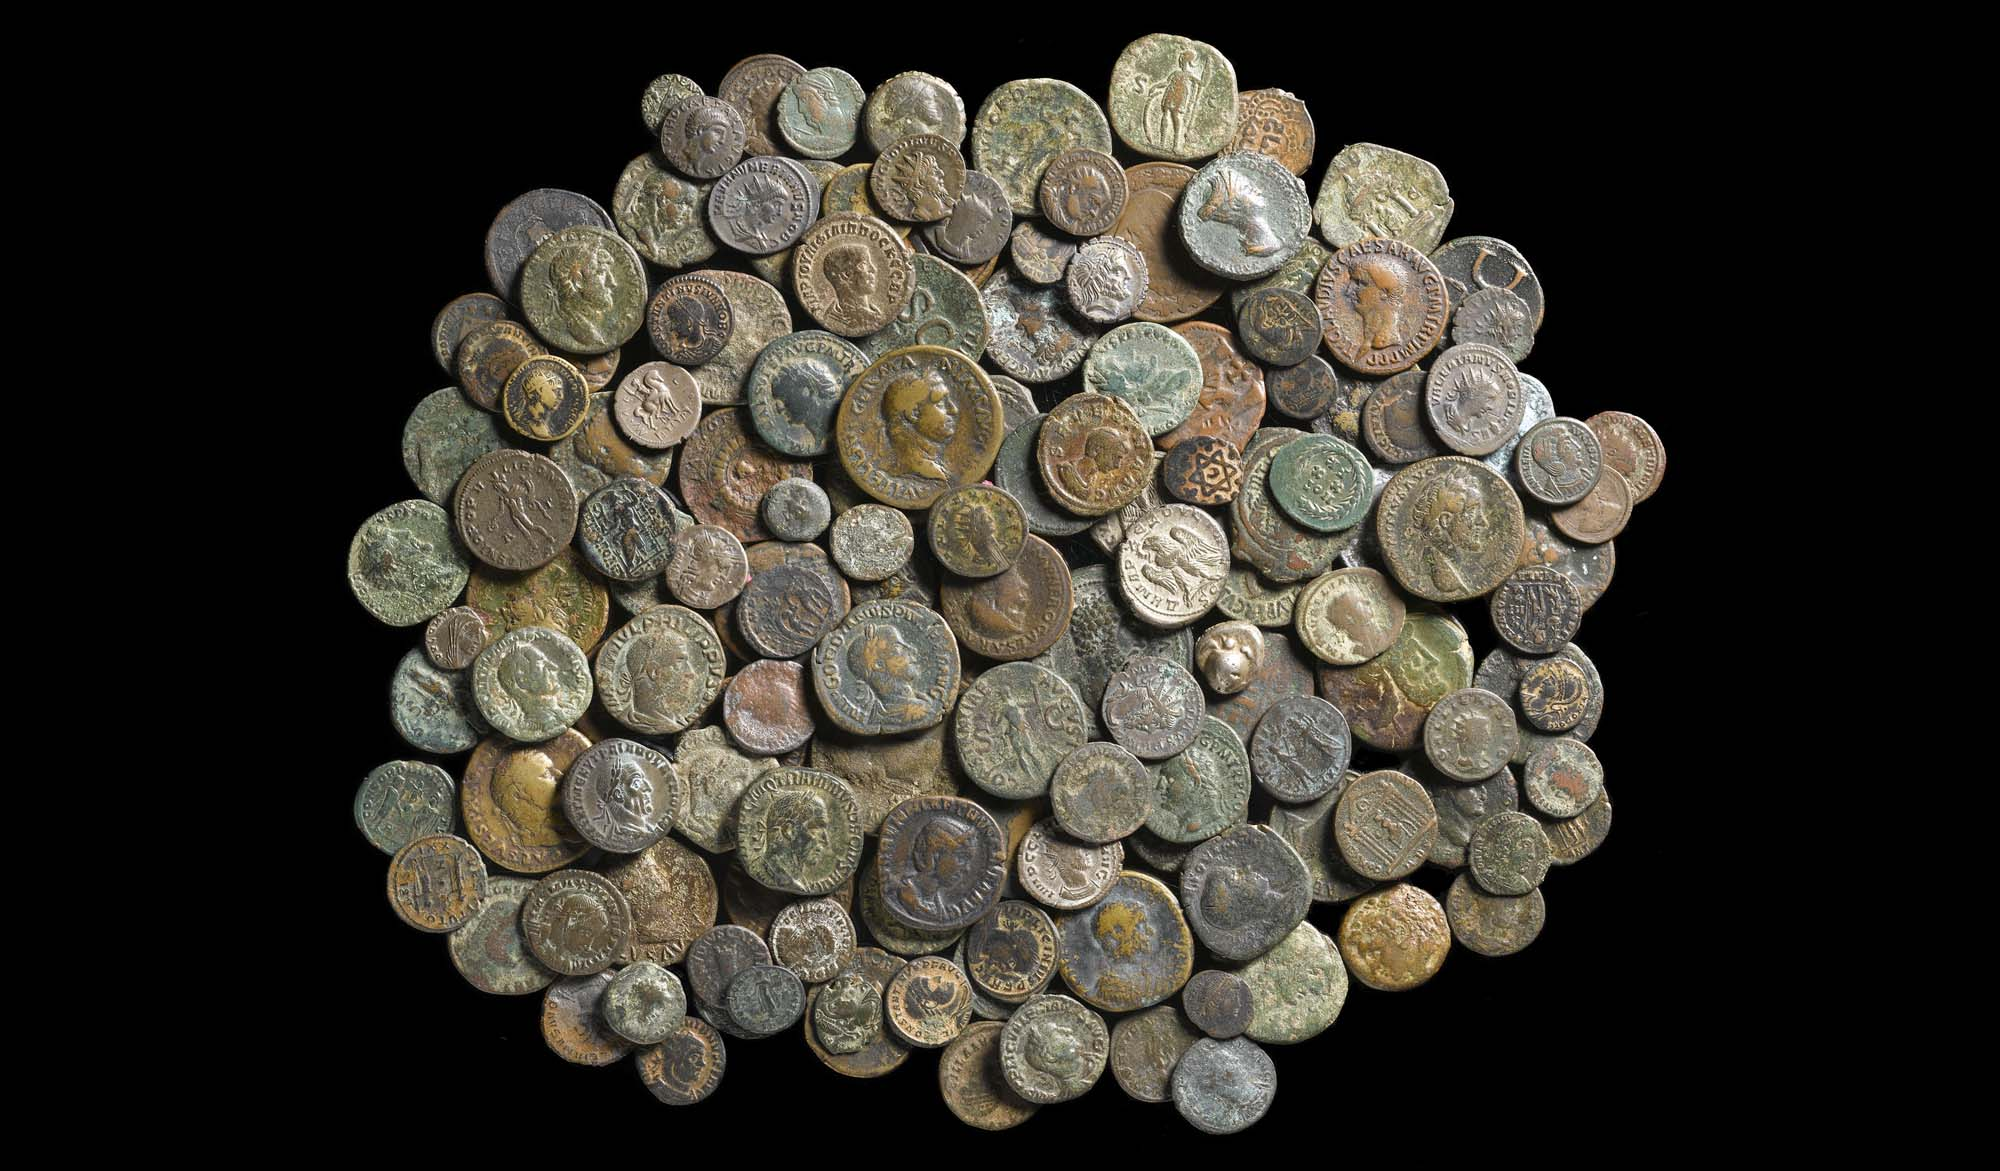 a photo of a large grouping of ancient coins